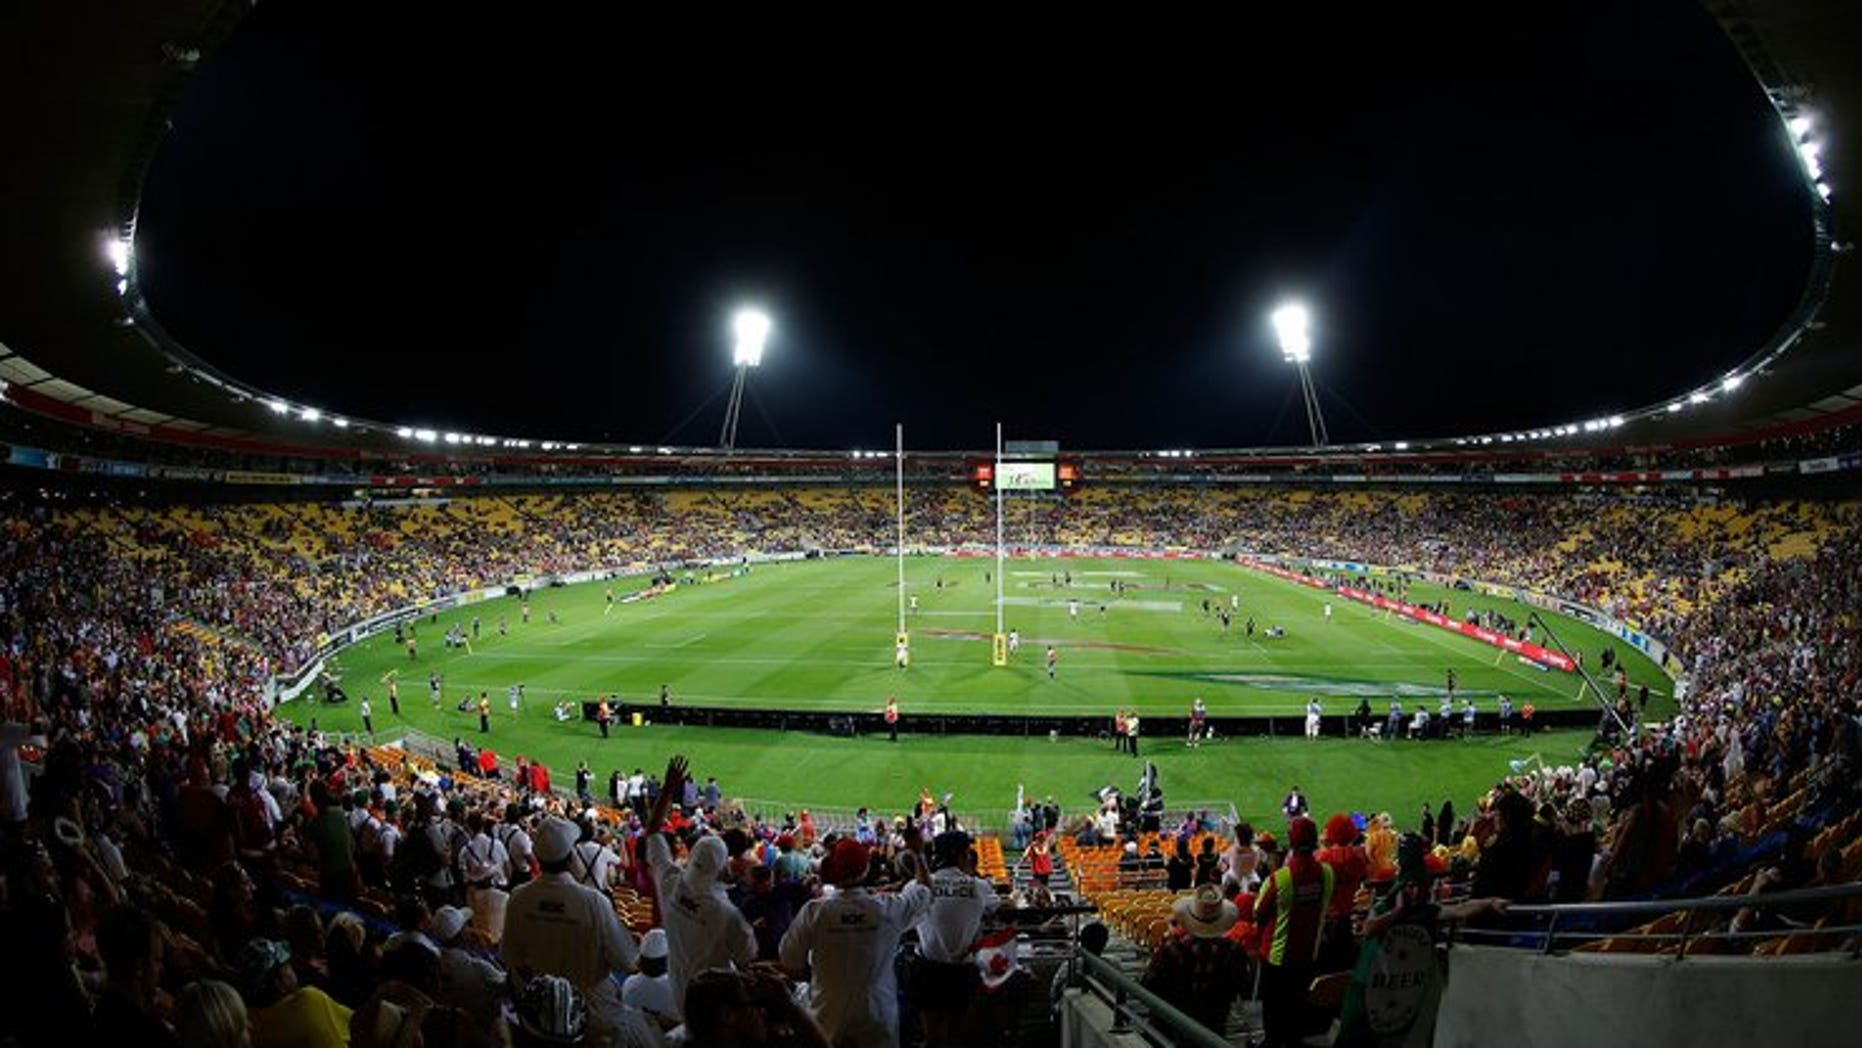 A general view shows the Westpac Stadium in Wellington on February 1, 2013. The All Blacks Test against Australia in earthquake-rattled Wellington next week was given a tentative go-ahead Saturday but officials said the final decision depended on a quake damage report.